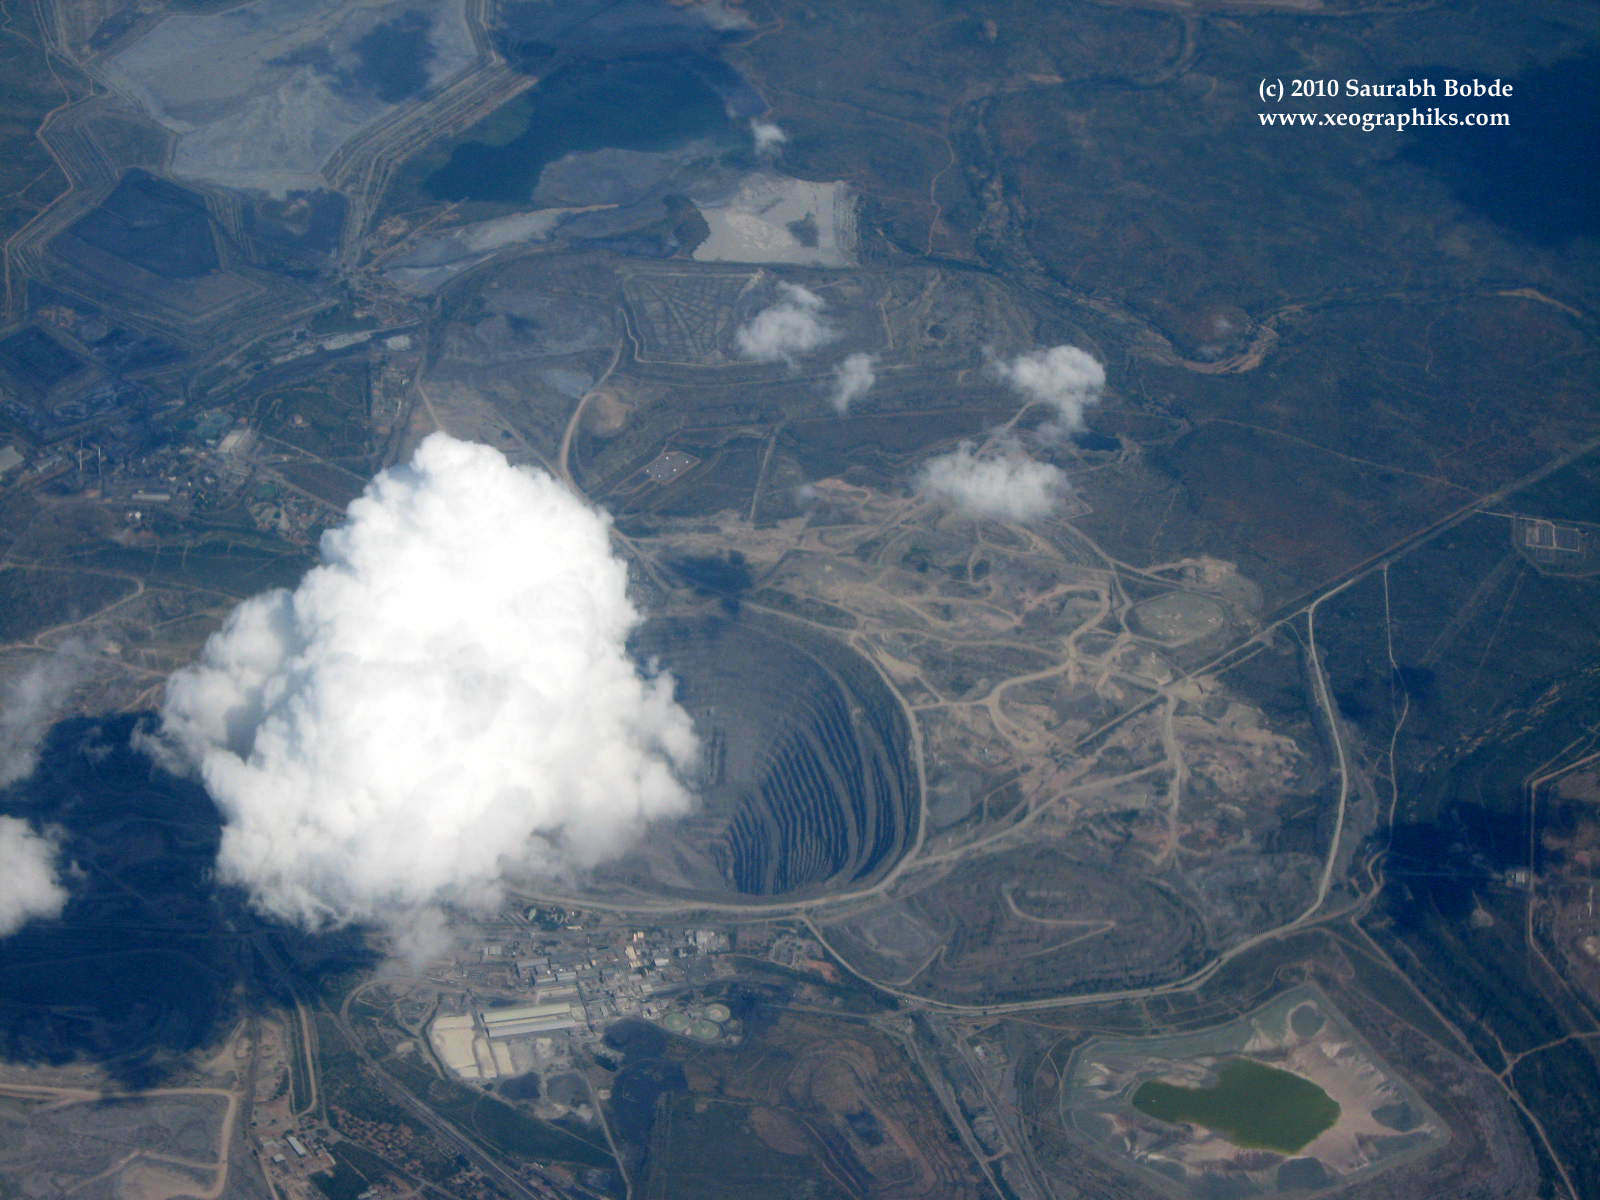 An aerial view (from an airplane) of a cloud appearing to float into a large mine to fill it all up!